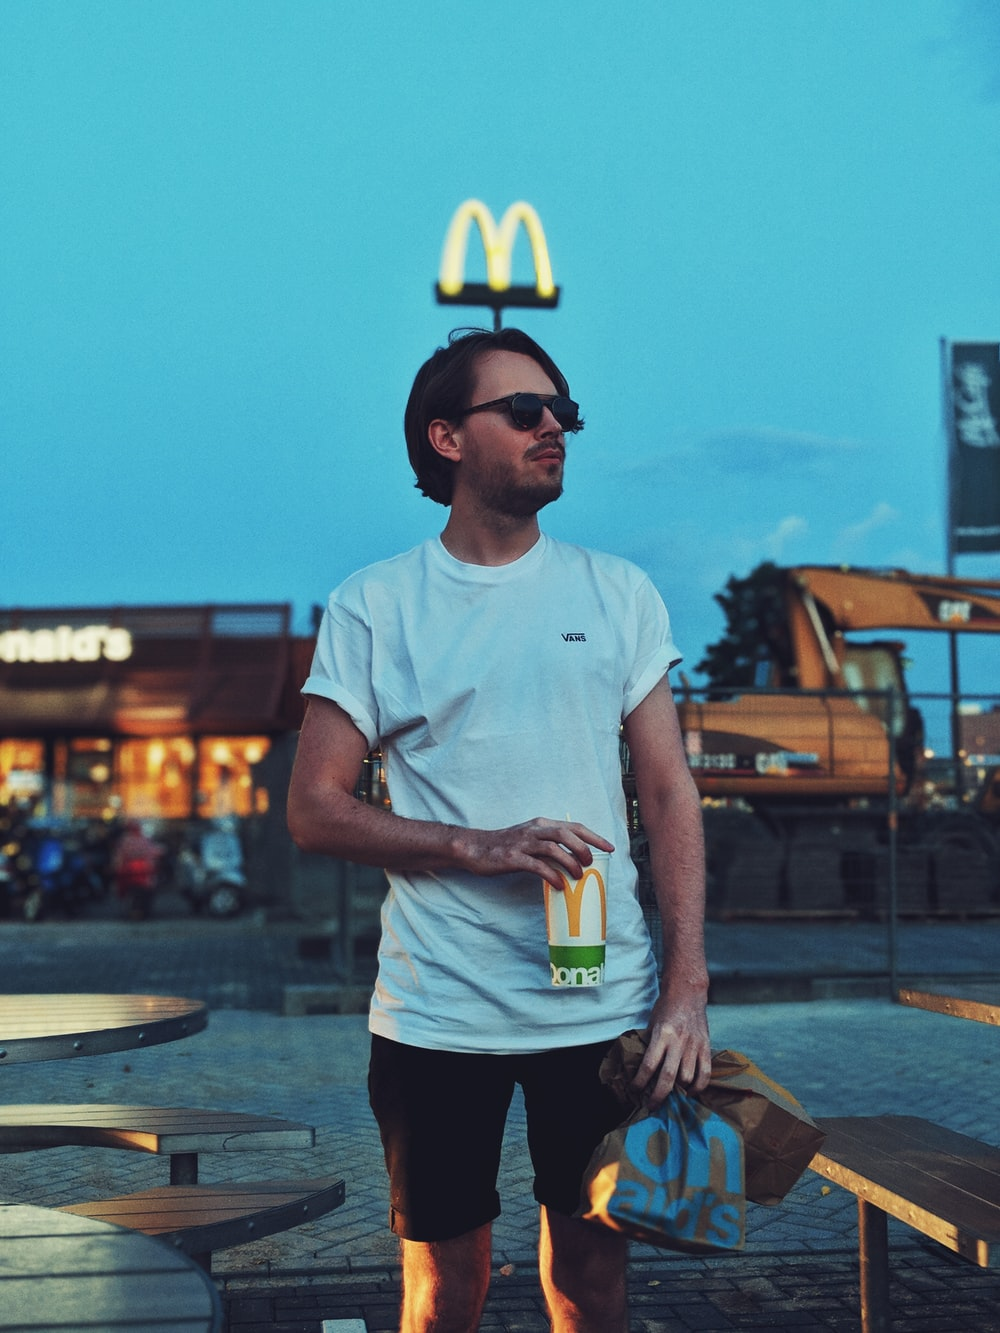 man holding McDonald cup beside camping table